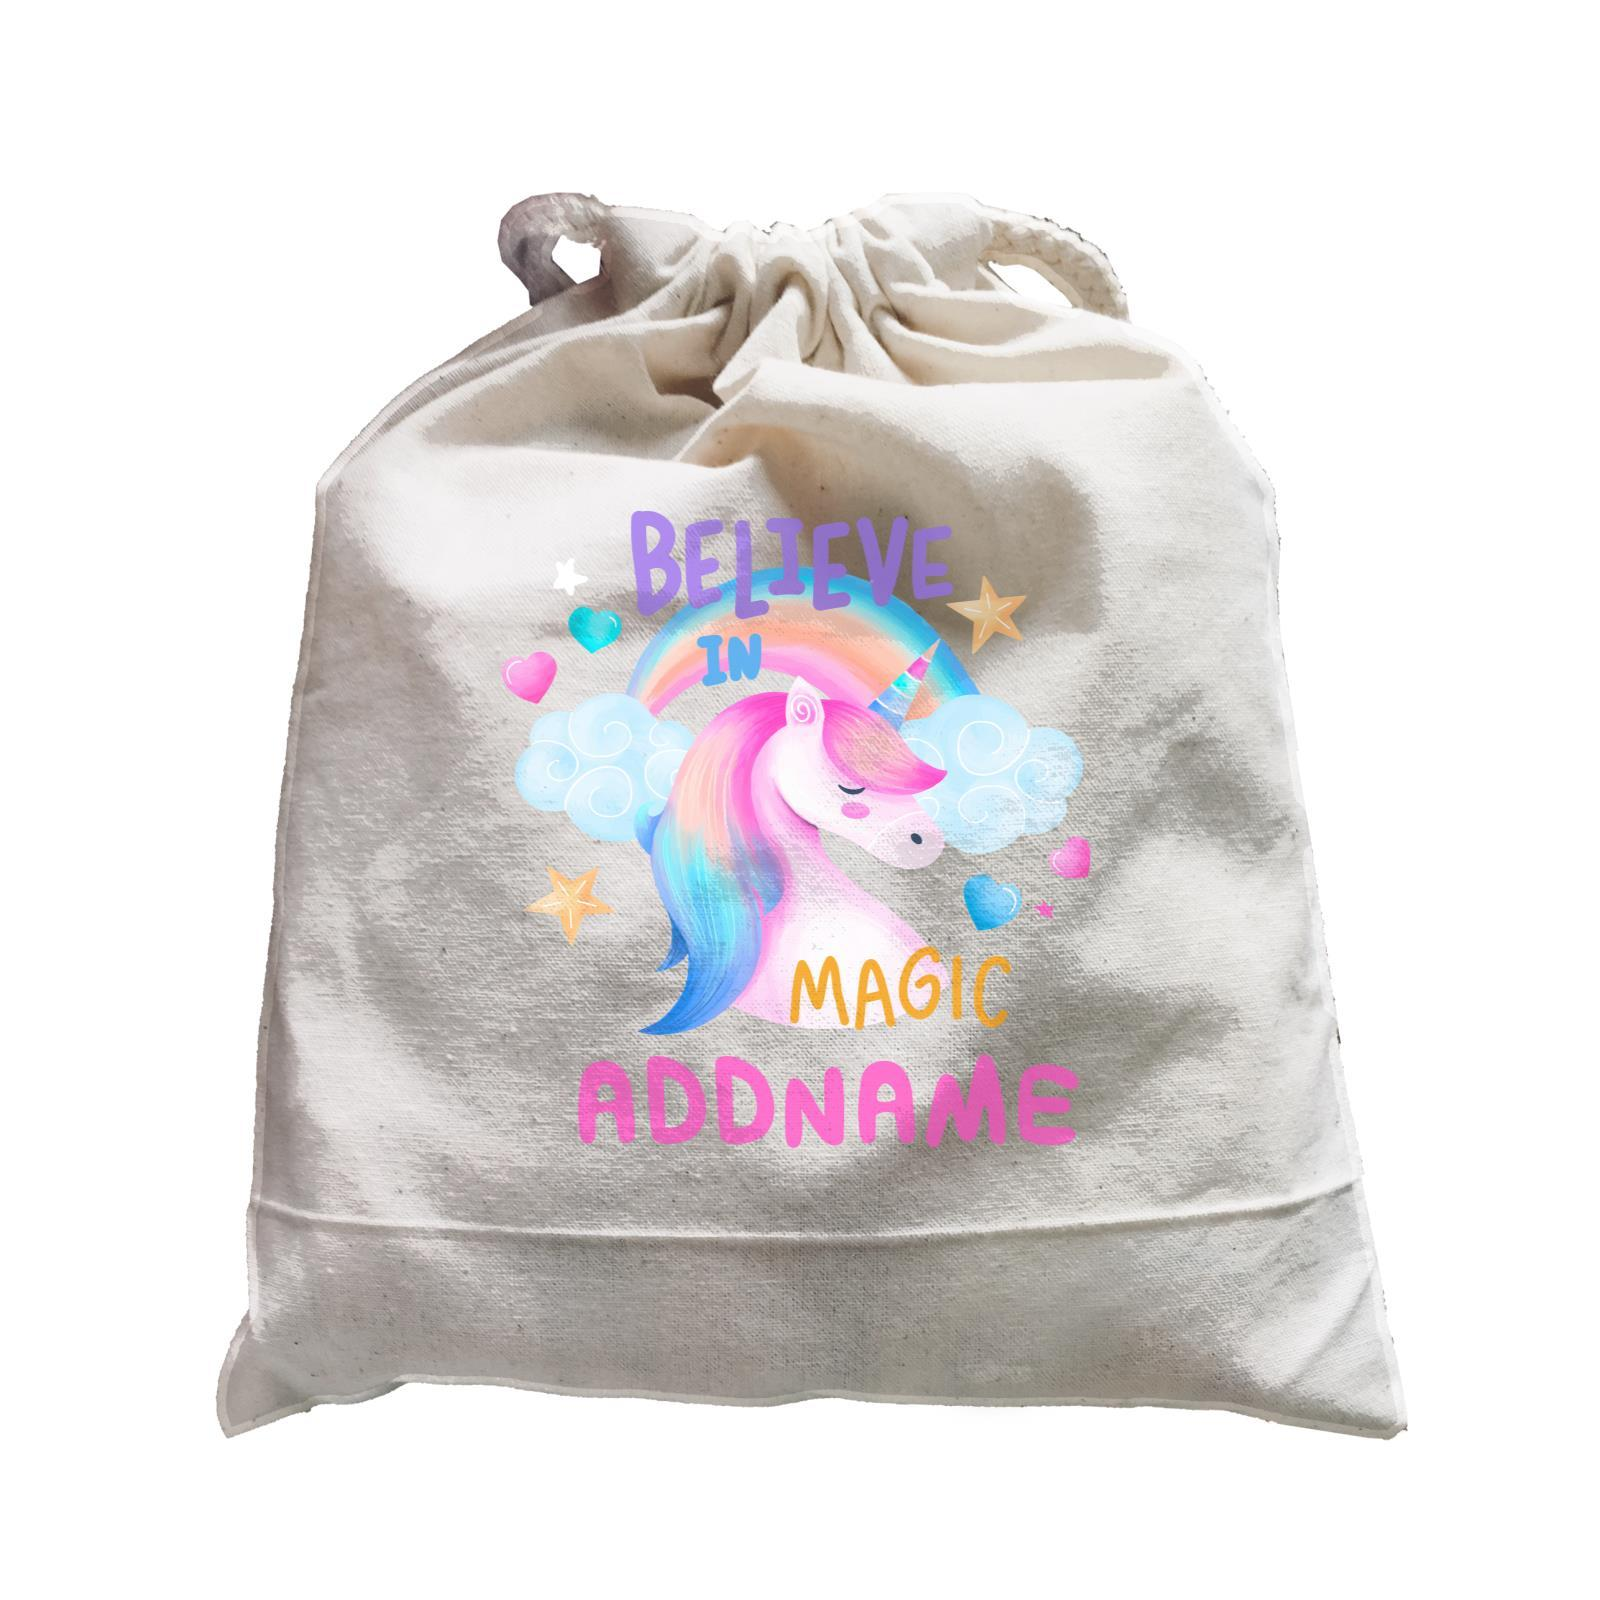 Children's Day Gift Series Believe In Magic Unicorn Addname  Satchel